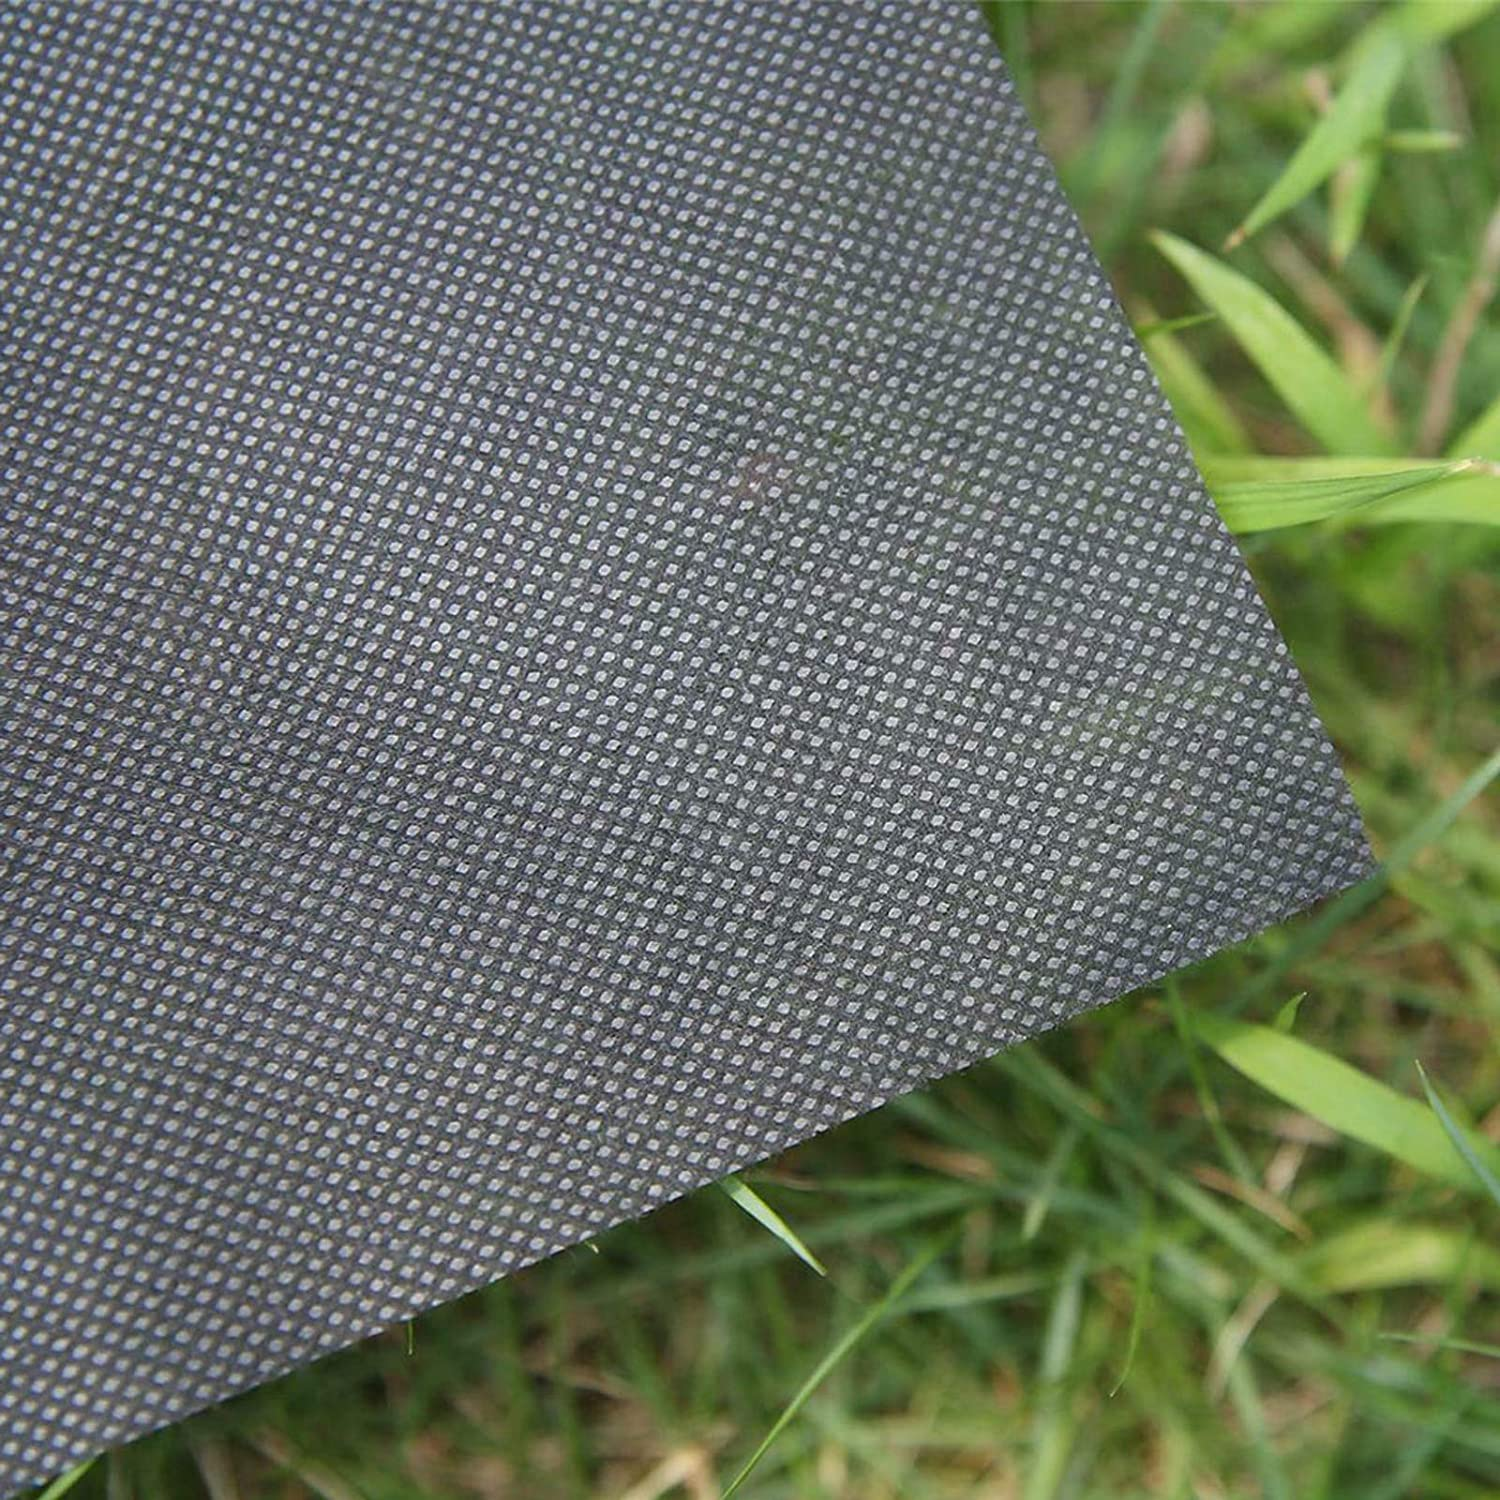 3.2x5ft//3.2x65ft Landscape Fabric Heavy Duty Gound Cover Weed Mat for Outdoor Gardens Non Woven Weed Block Weed-Proof Cloth Plant Protect Gardening Supplies Mats /æ/— Garden Weed Barrier